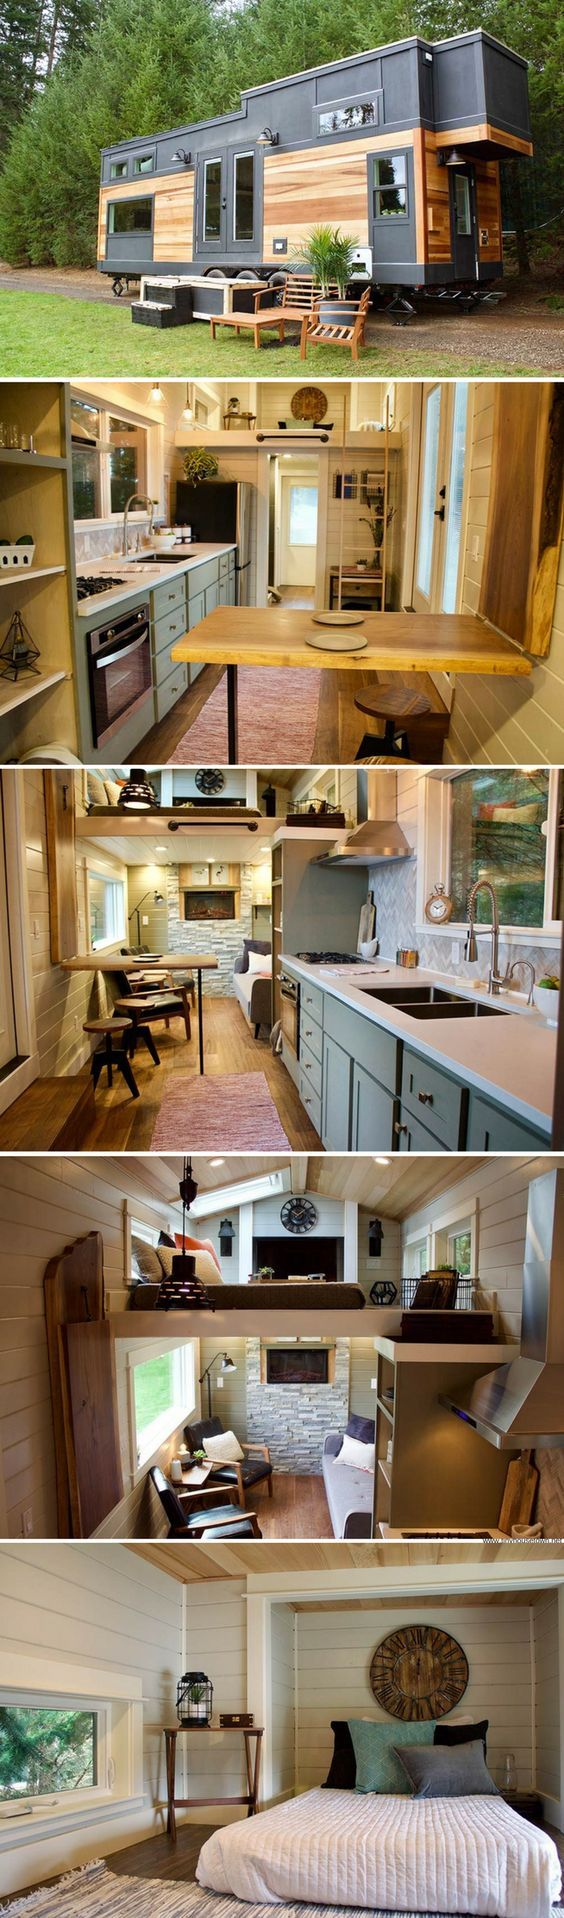 2181 best Tiny House images on Pinterest | Tiny homes, Little ... On Wheels Tiny House Designs B E A on